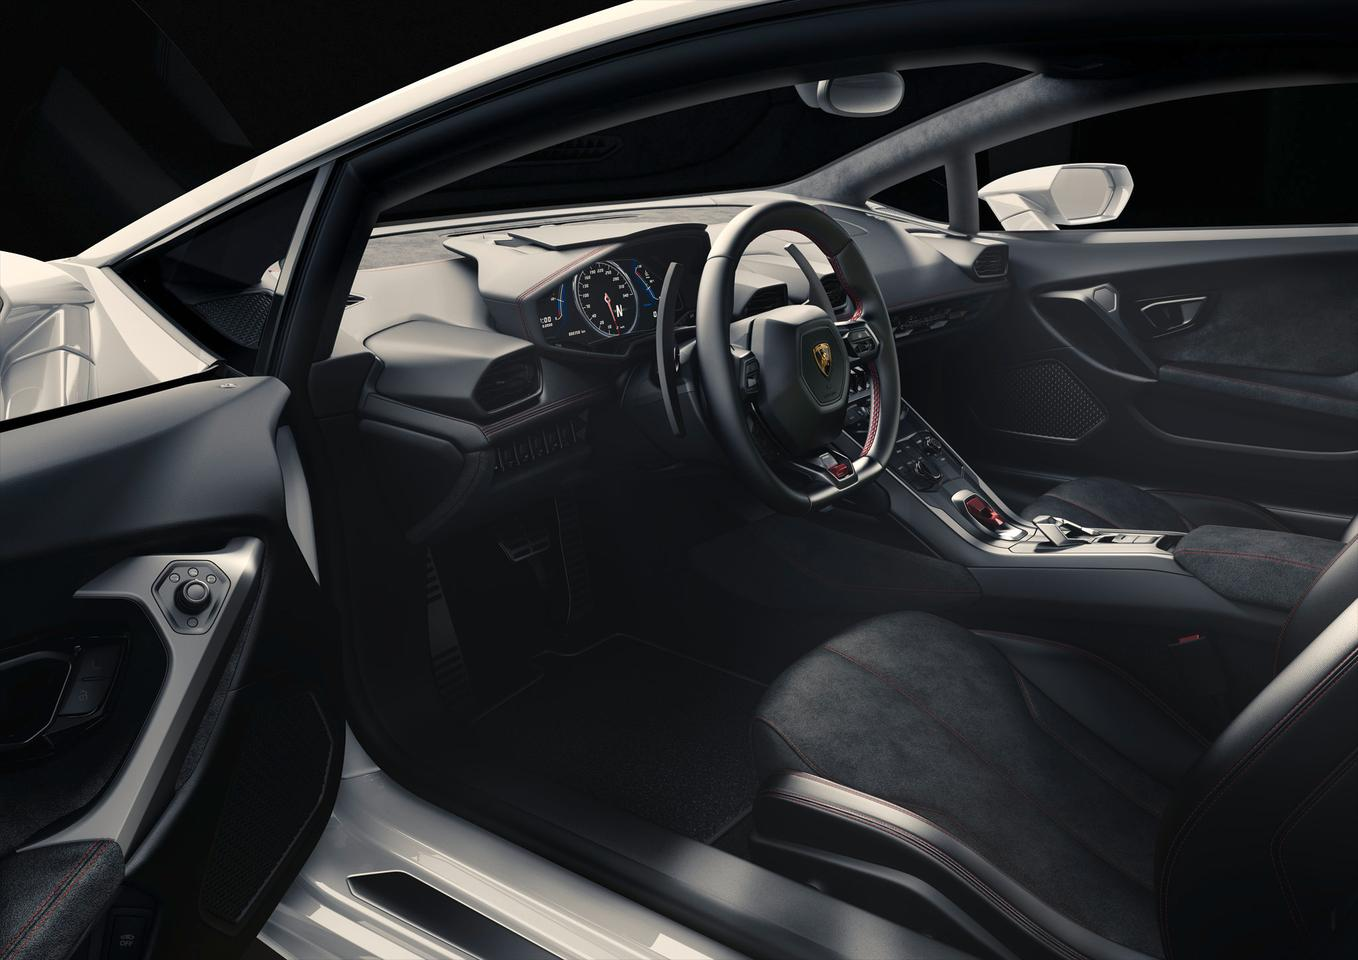 A Nappa leather/Alcantara soaked interior also supports a 12.3 inch TFT instrument panel for navigation, engine and infotainment details